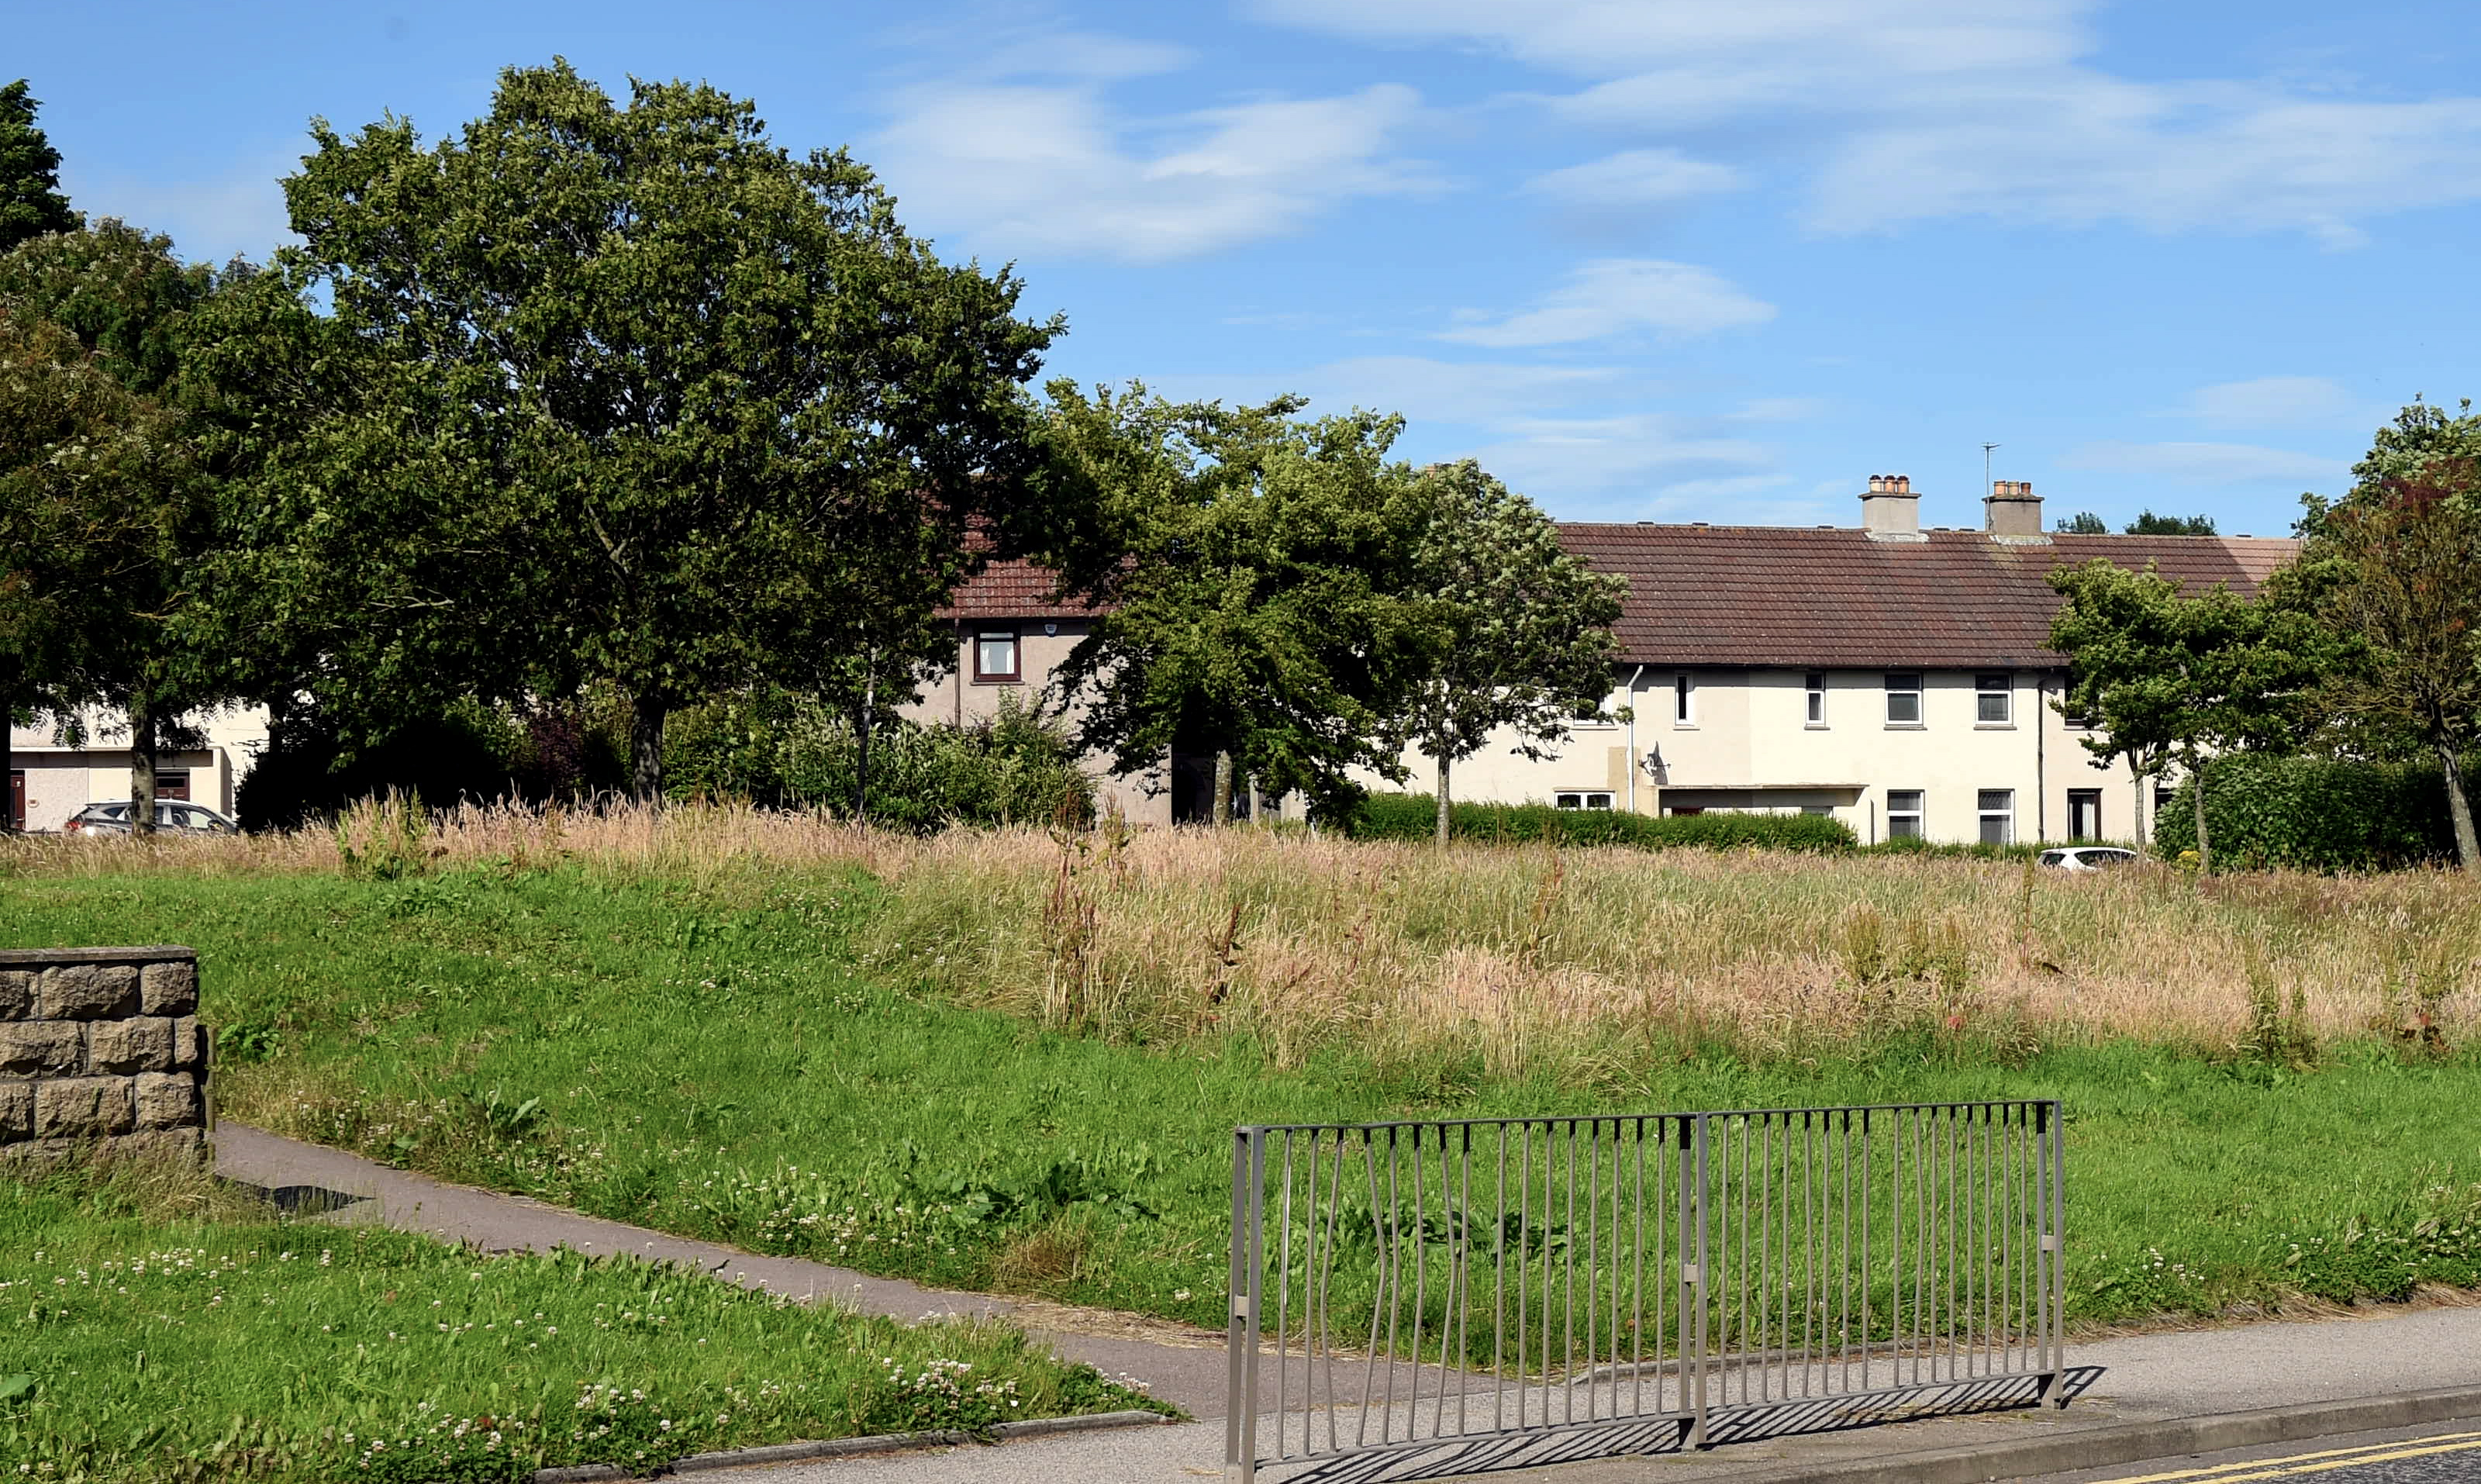 Residents in Garthdee have complained about the overgrown grass in the green spaces